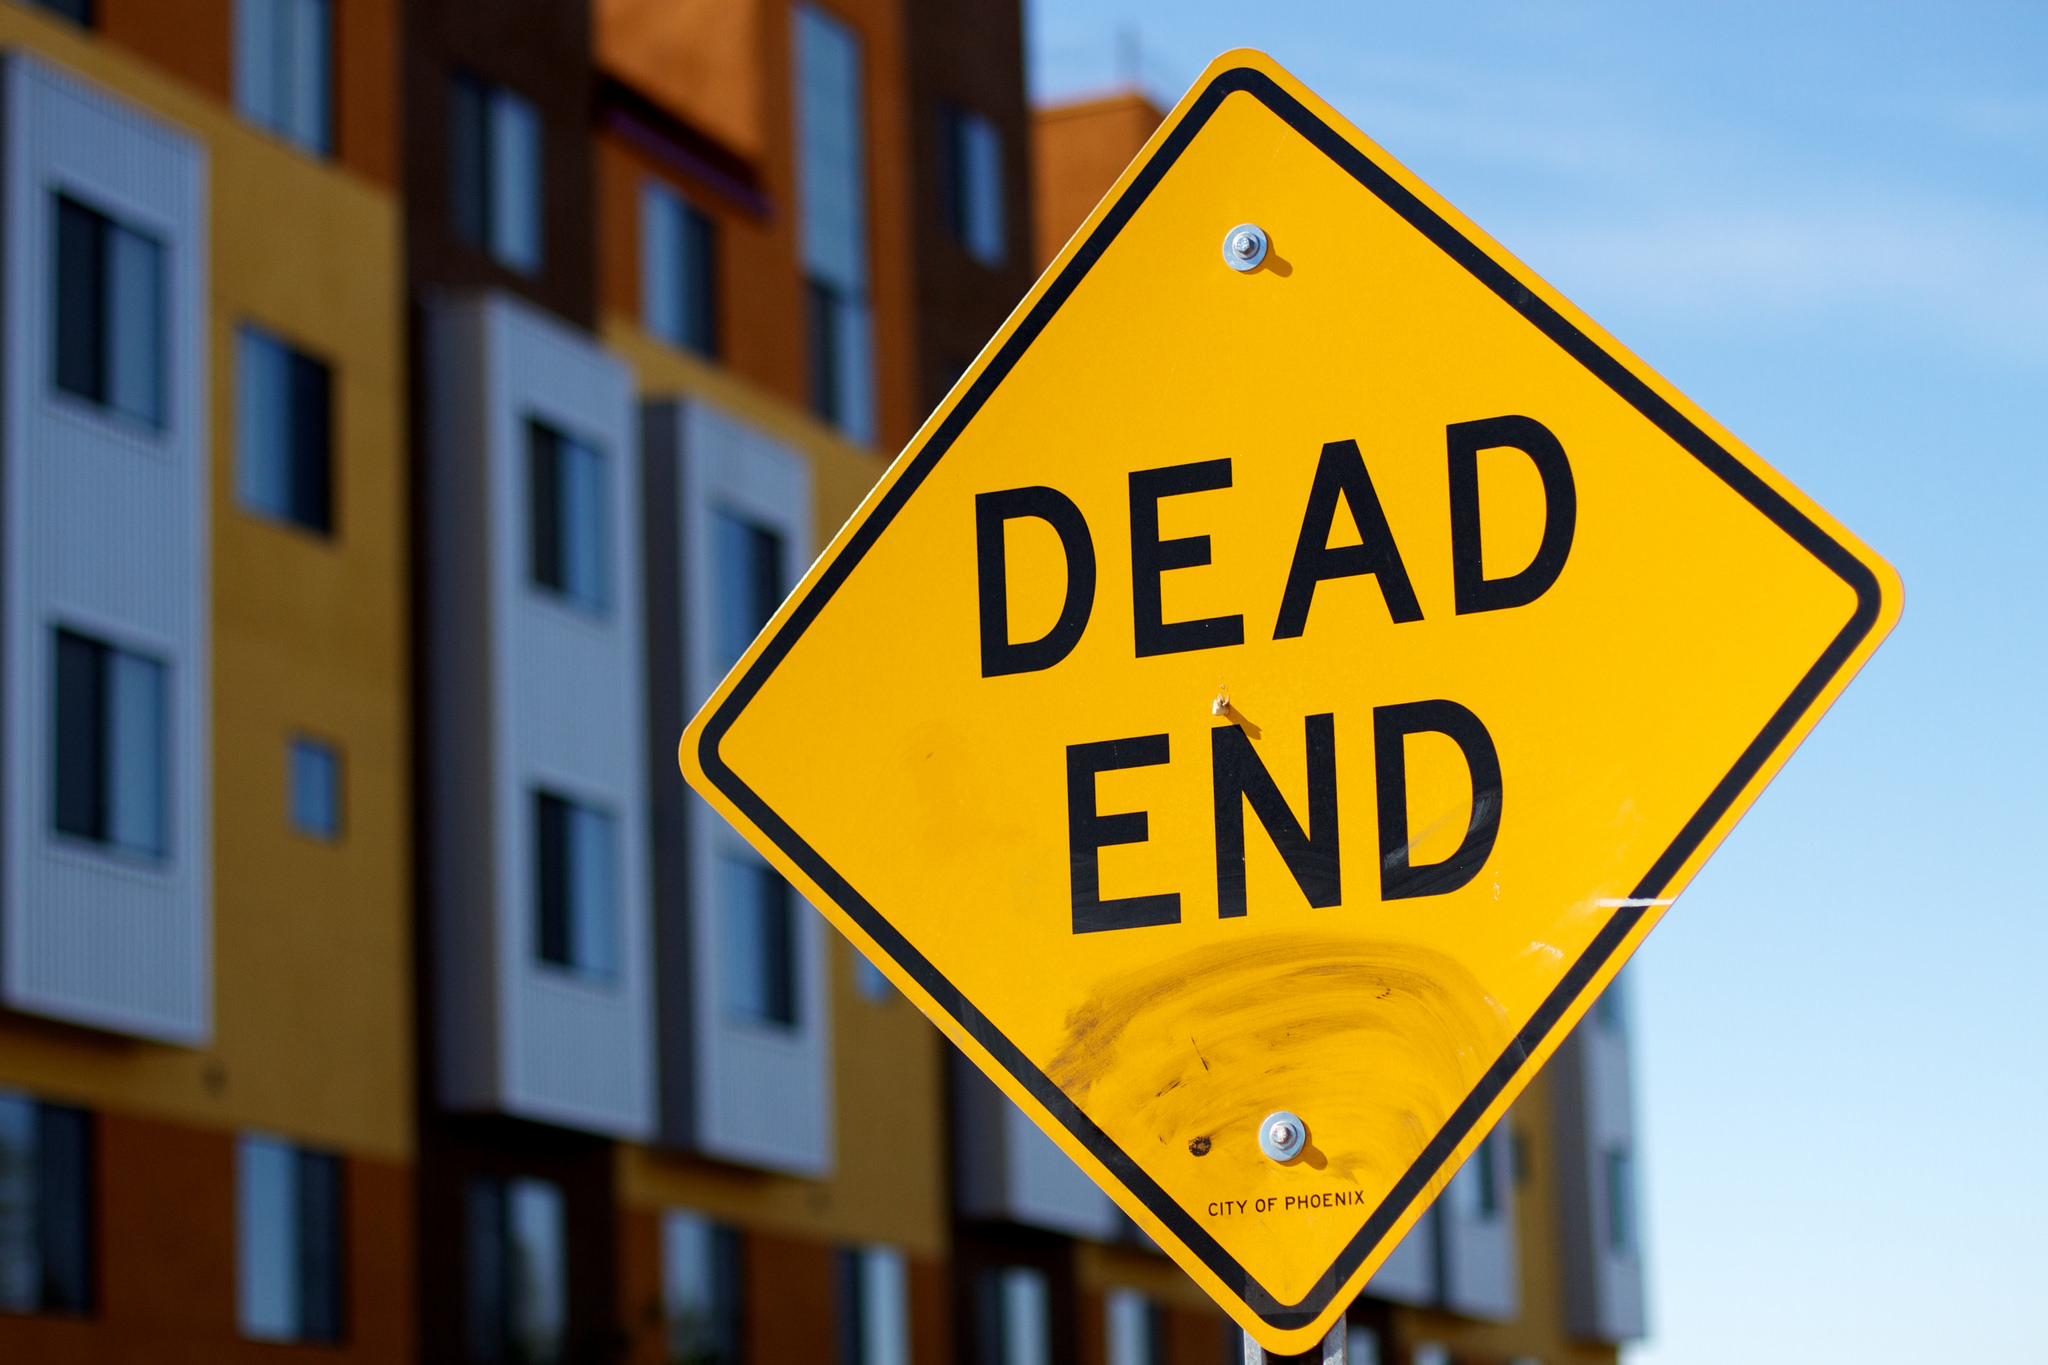 dating dead end